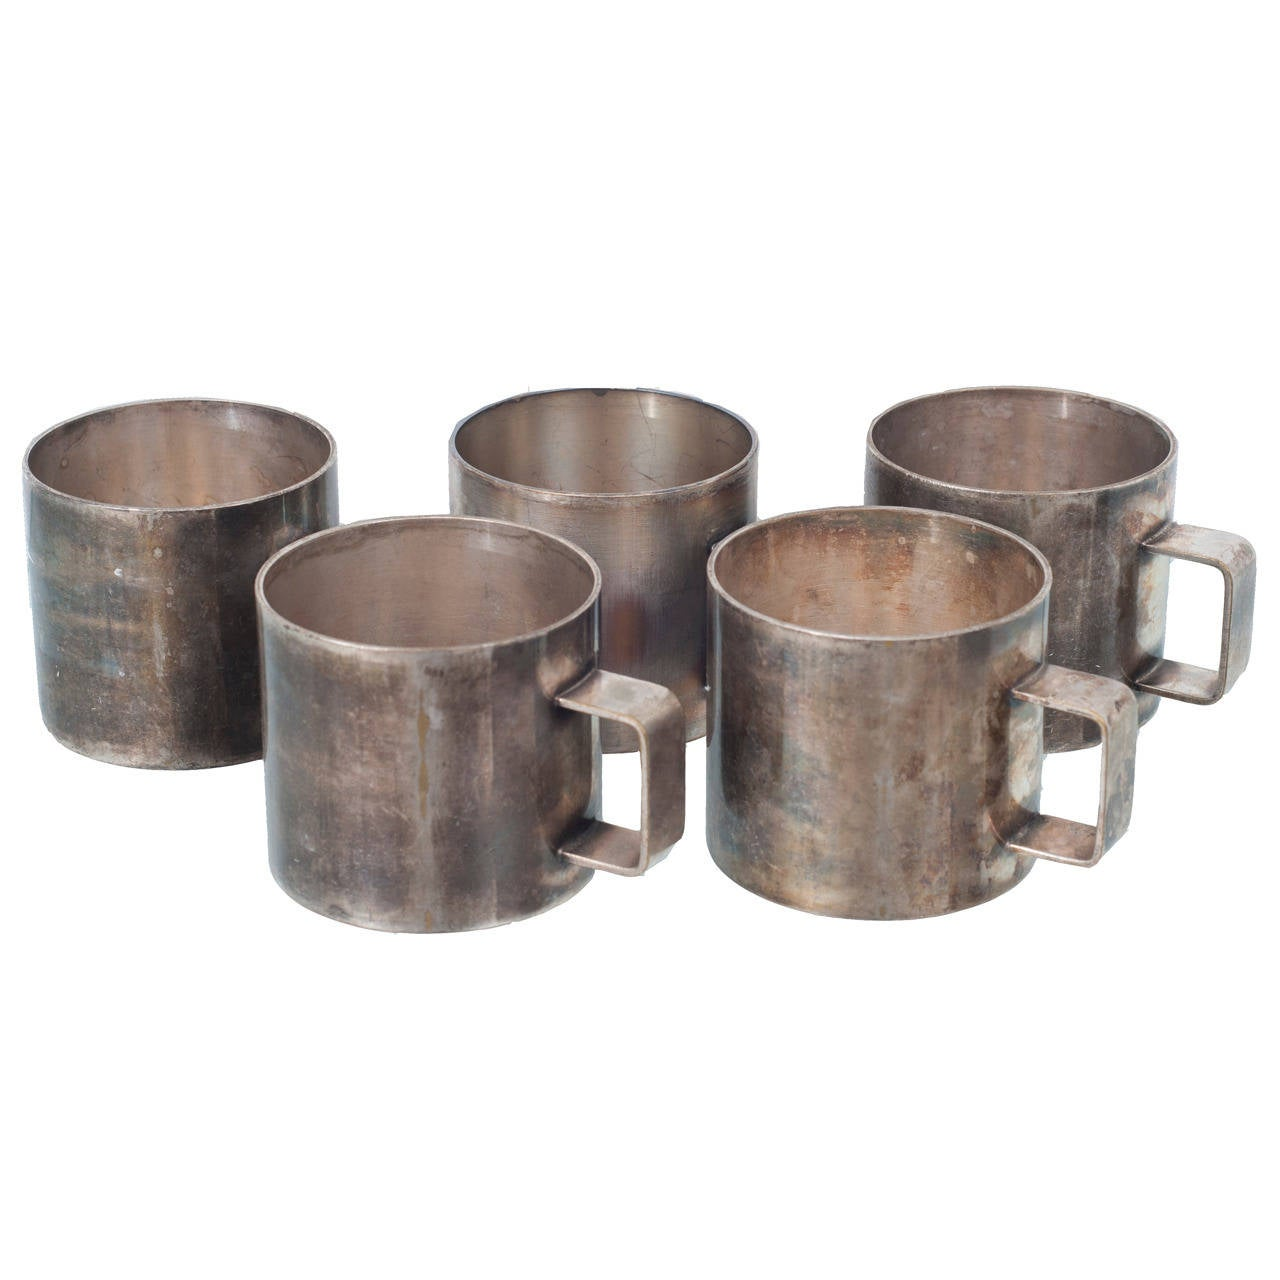 Set of 18 Silver Plated Beer Mugs, Sold Separately 1